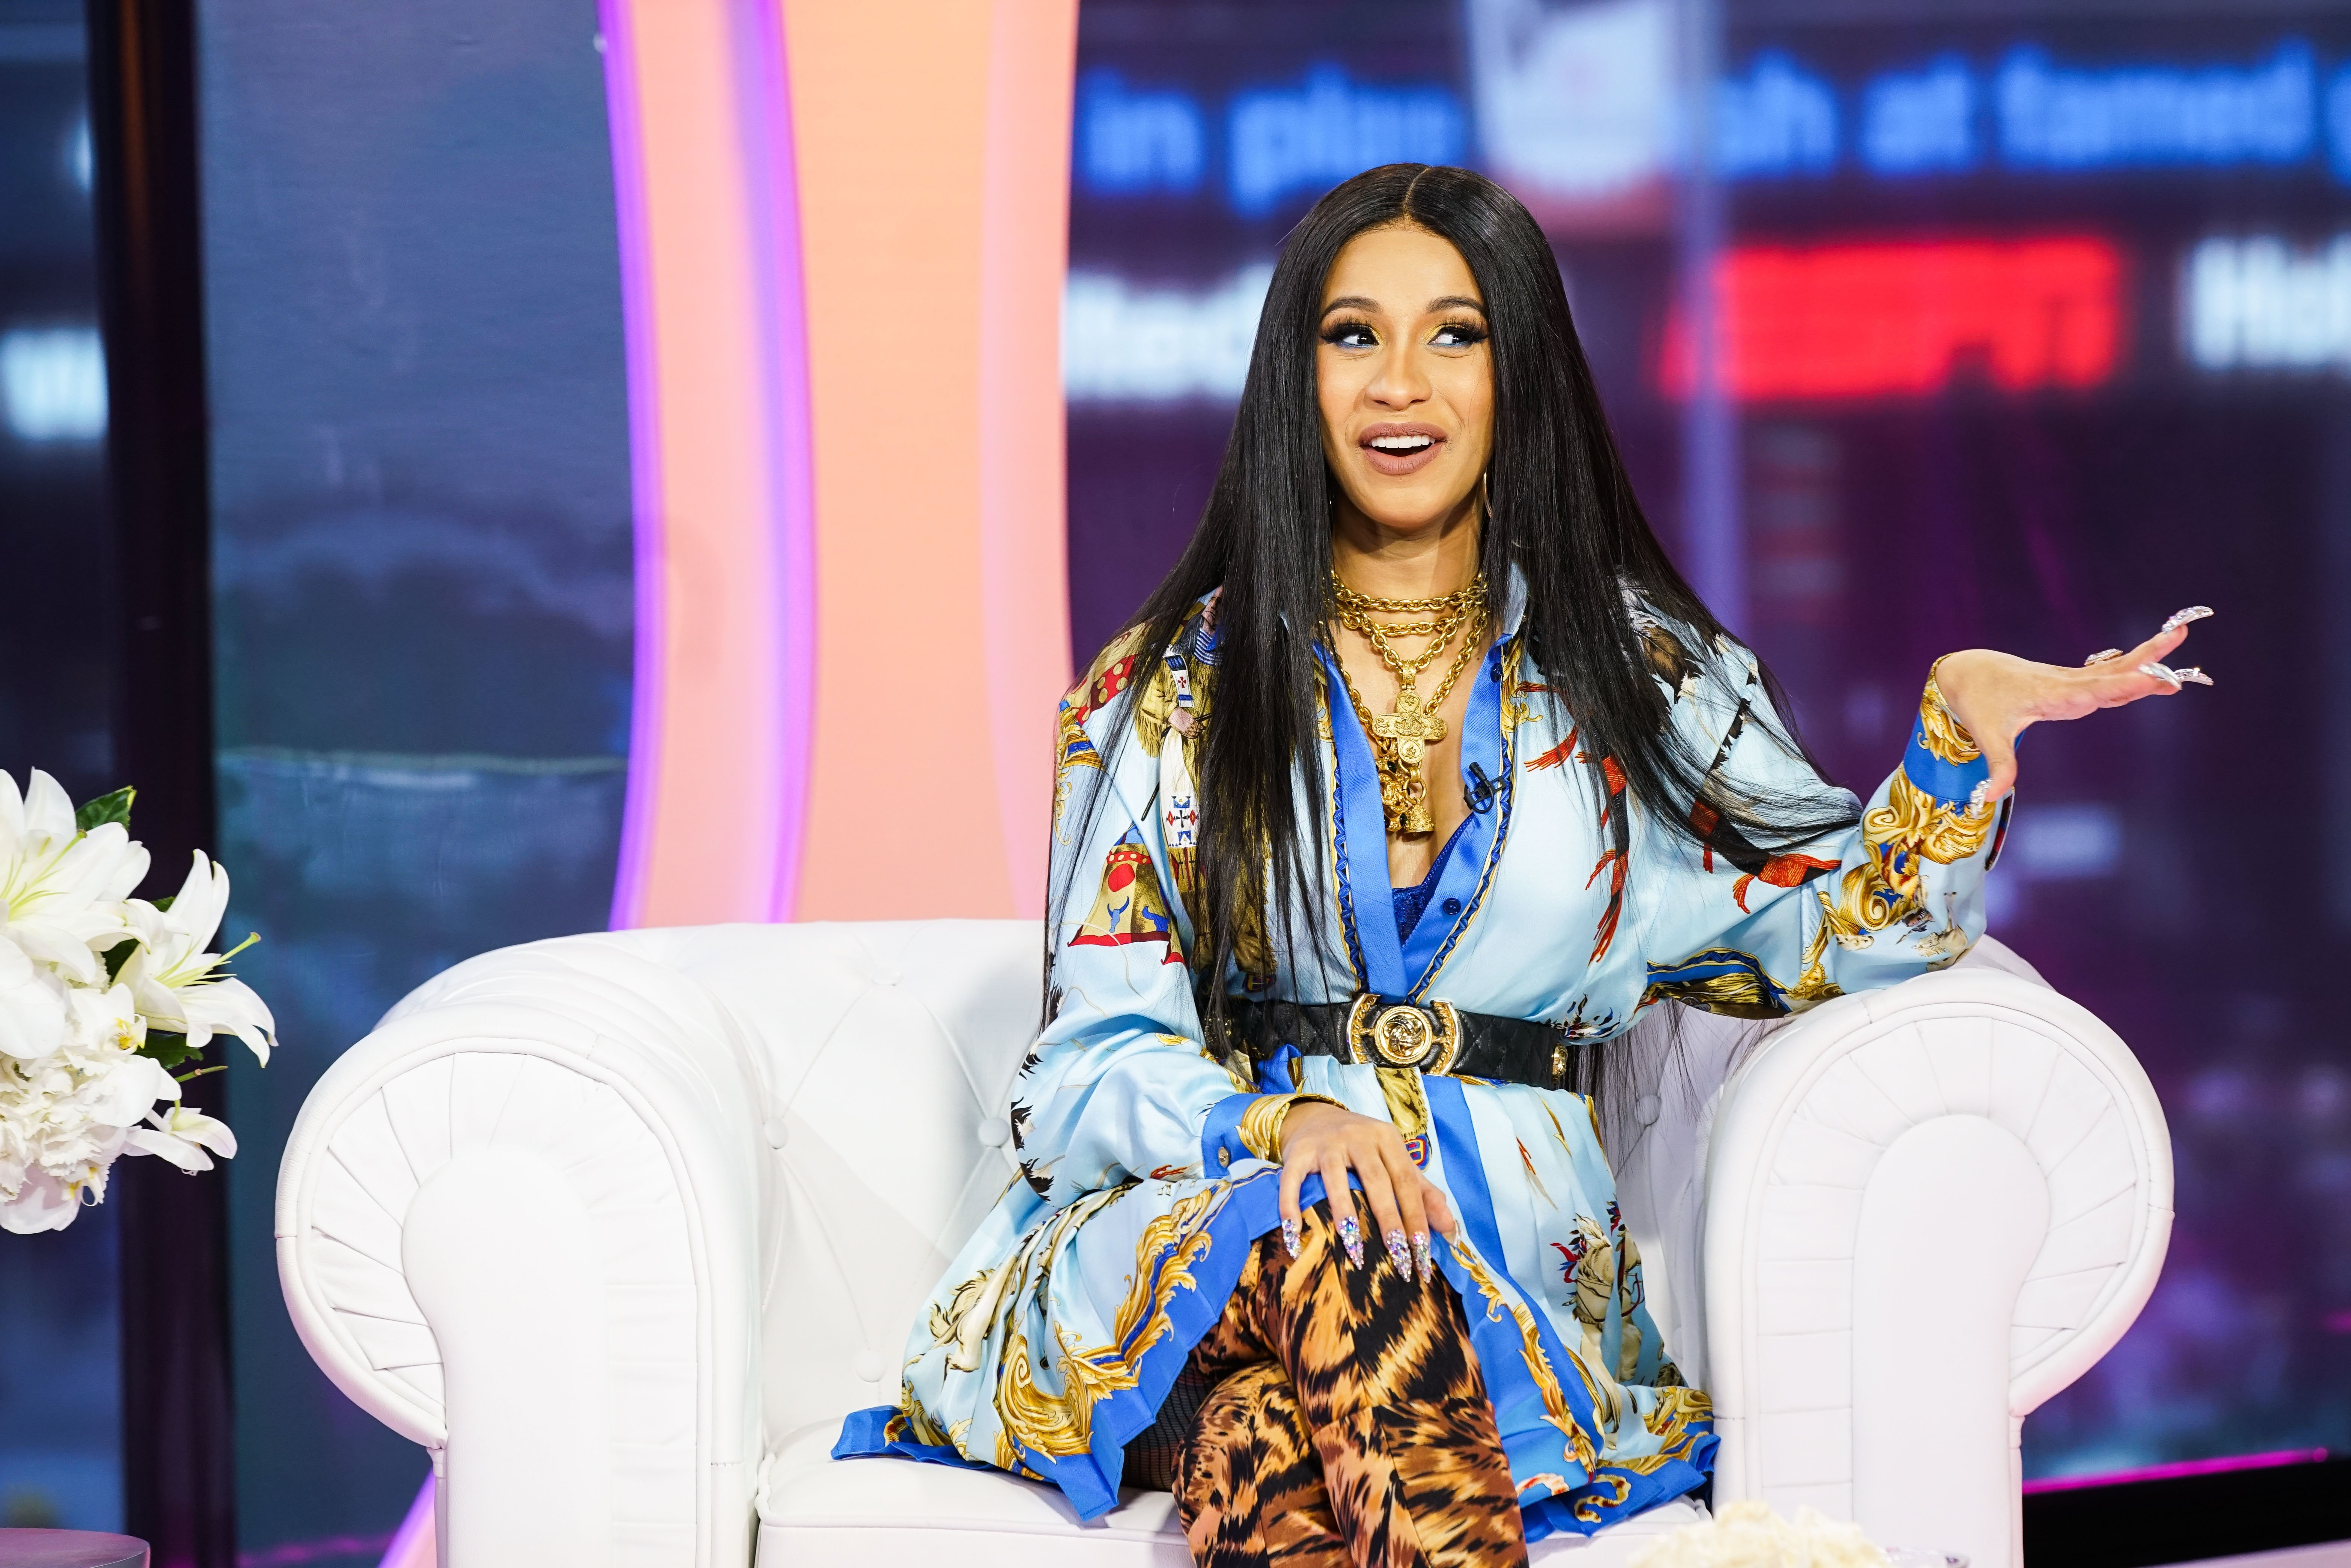 """Cardi B at """"TRL: Party with Cardi"""" on MTV on April 11, 2018. 